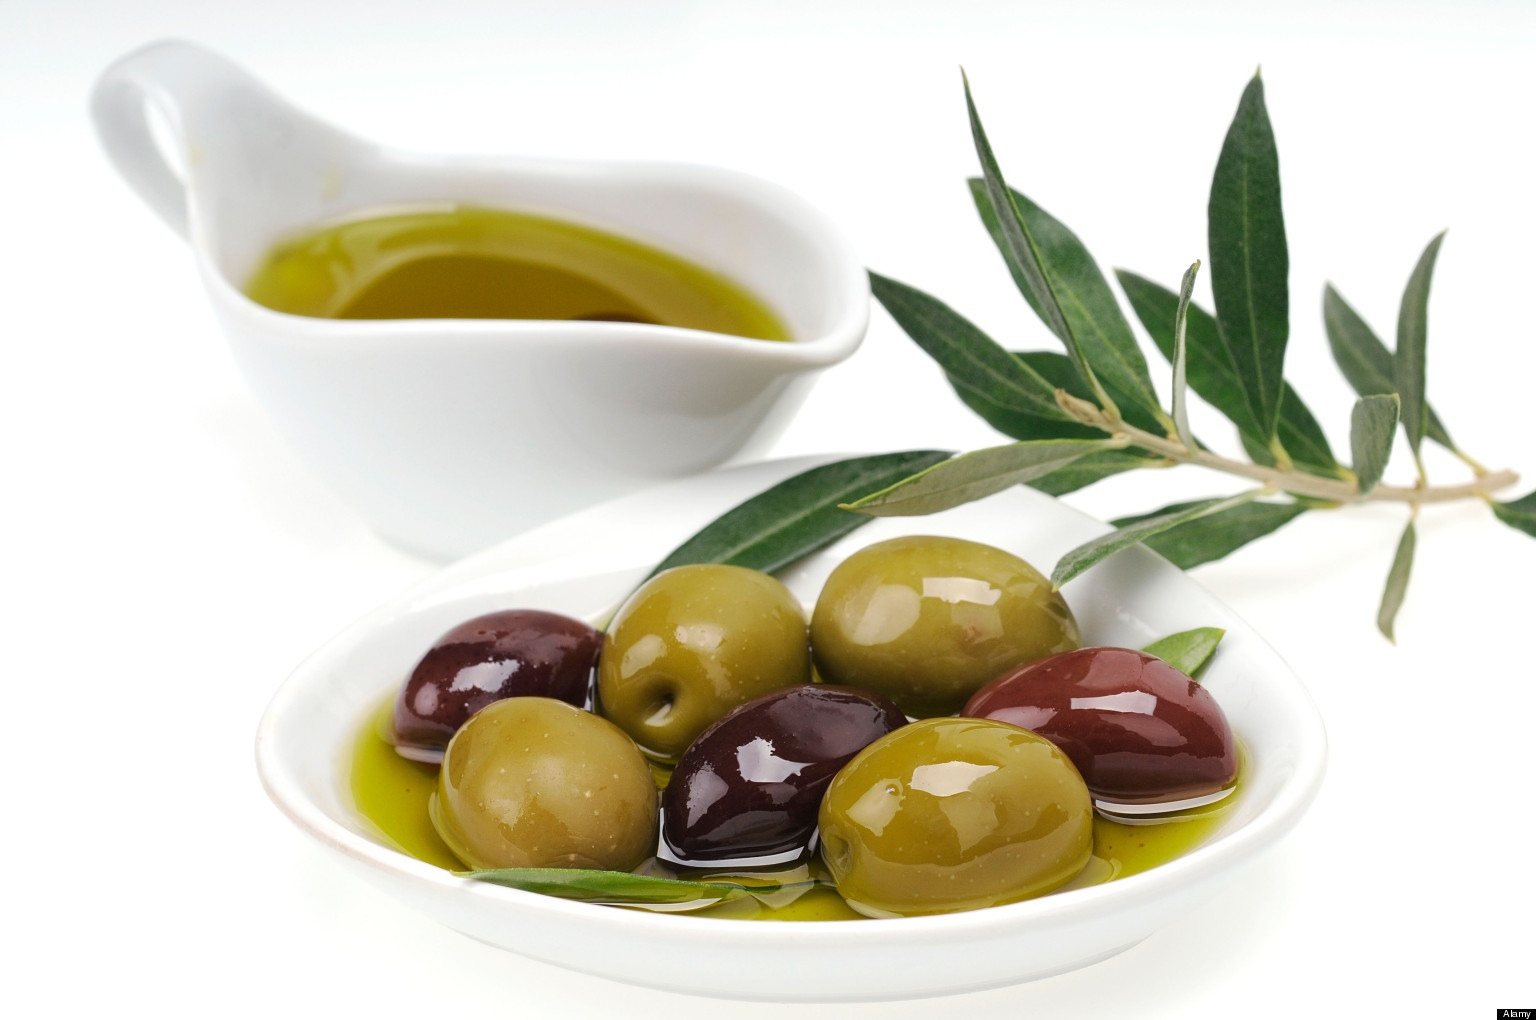 Olive Wallpapers HD